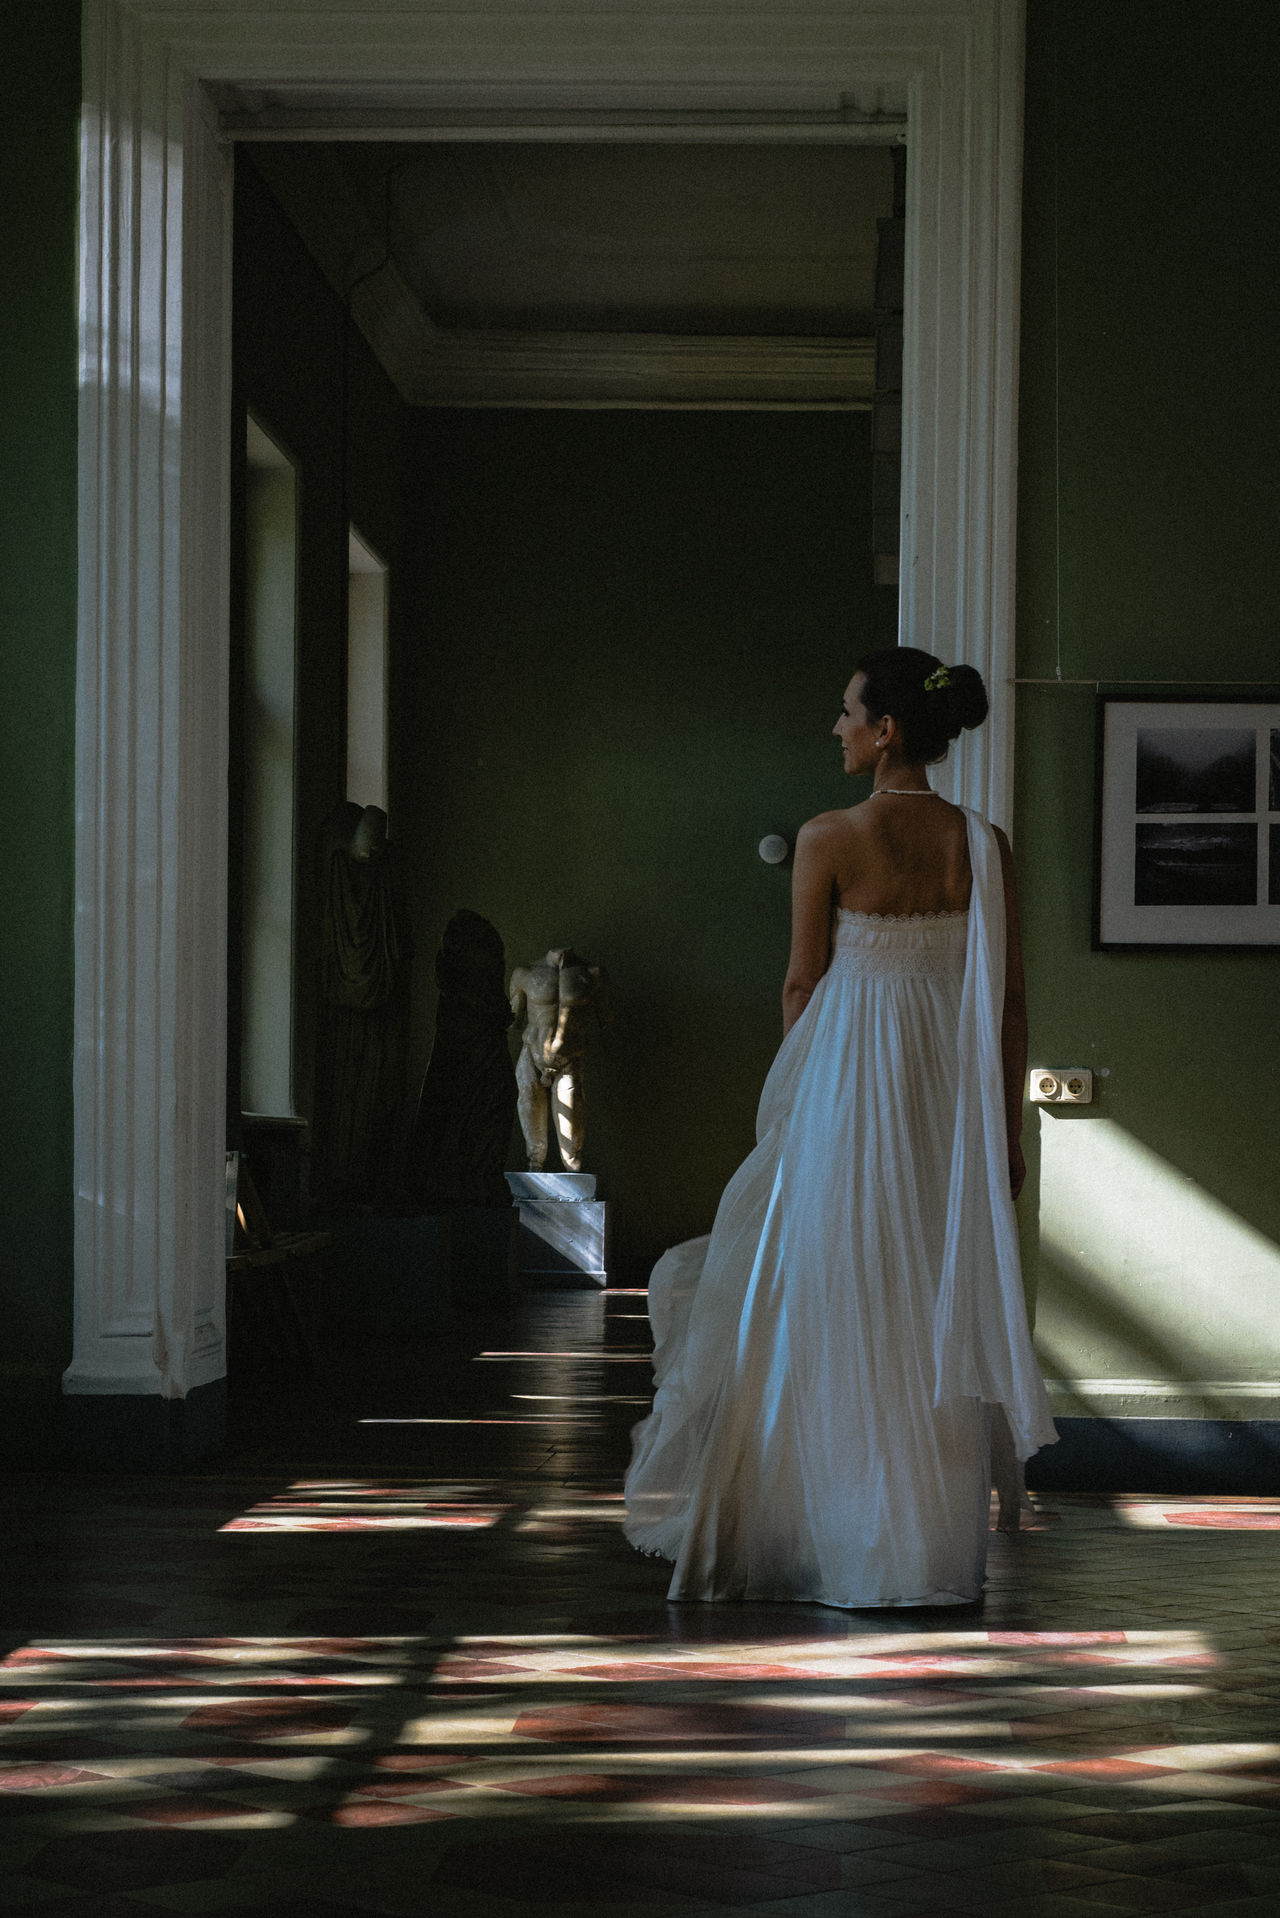 Architectural Column Bride Day Full Length Indoors  Life Events One Person People Real People Standing Wedding Wedding Dress Women Young Adult Young Women